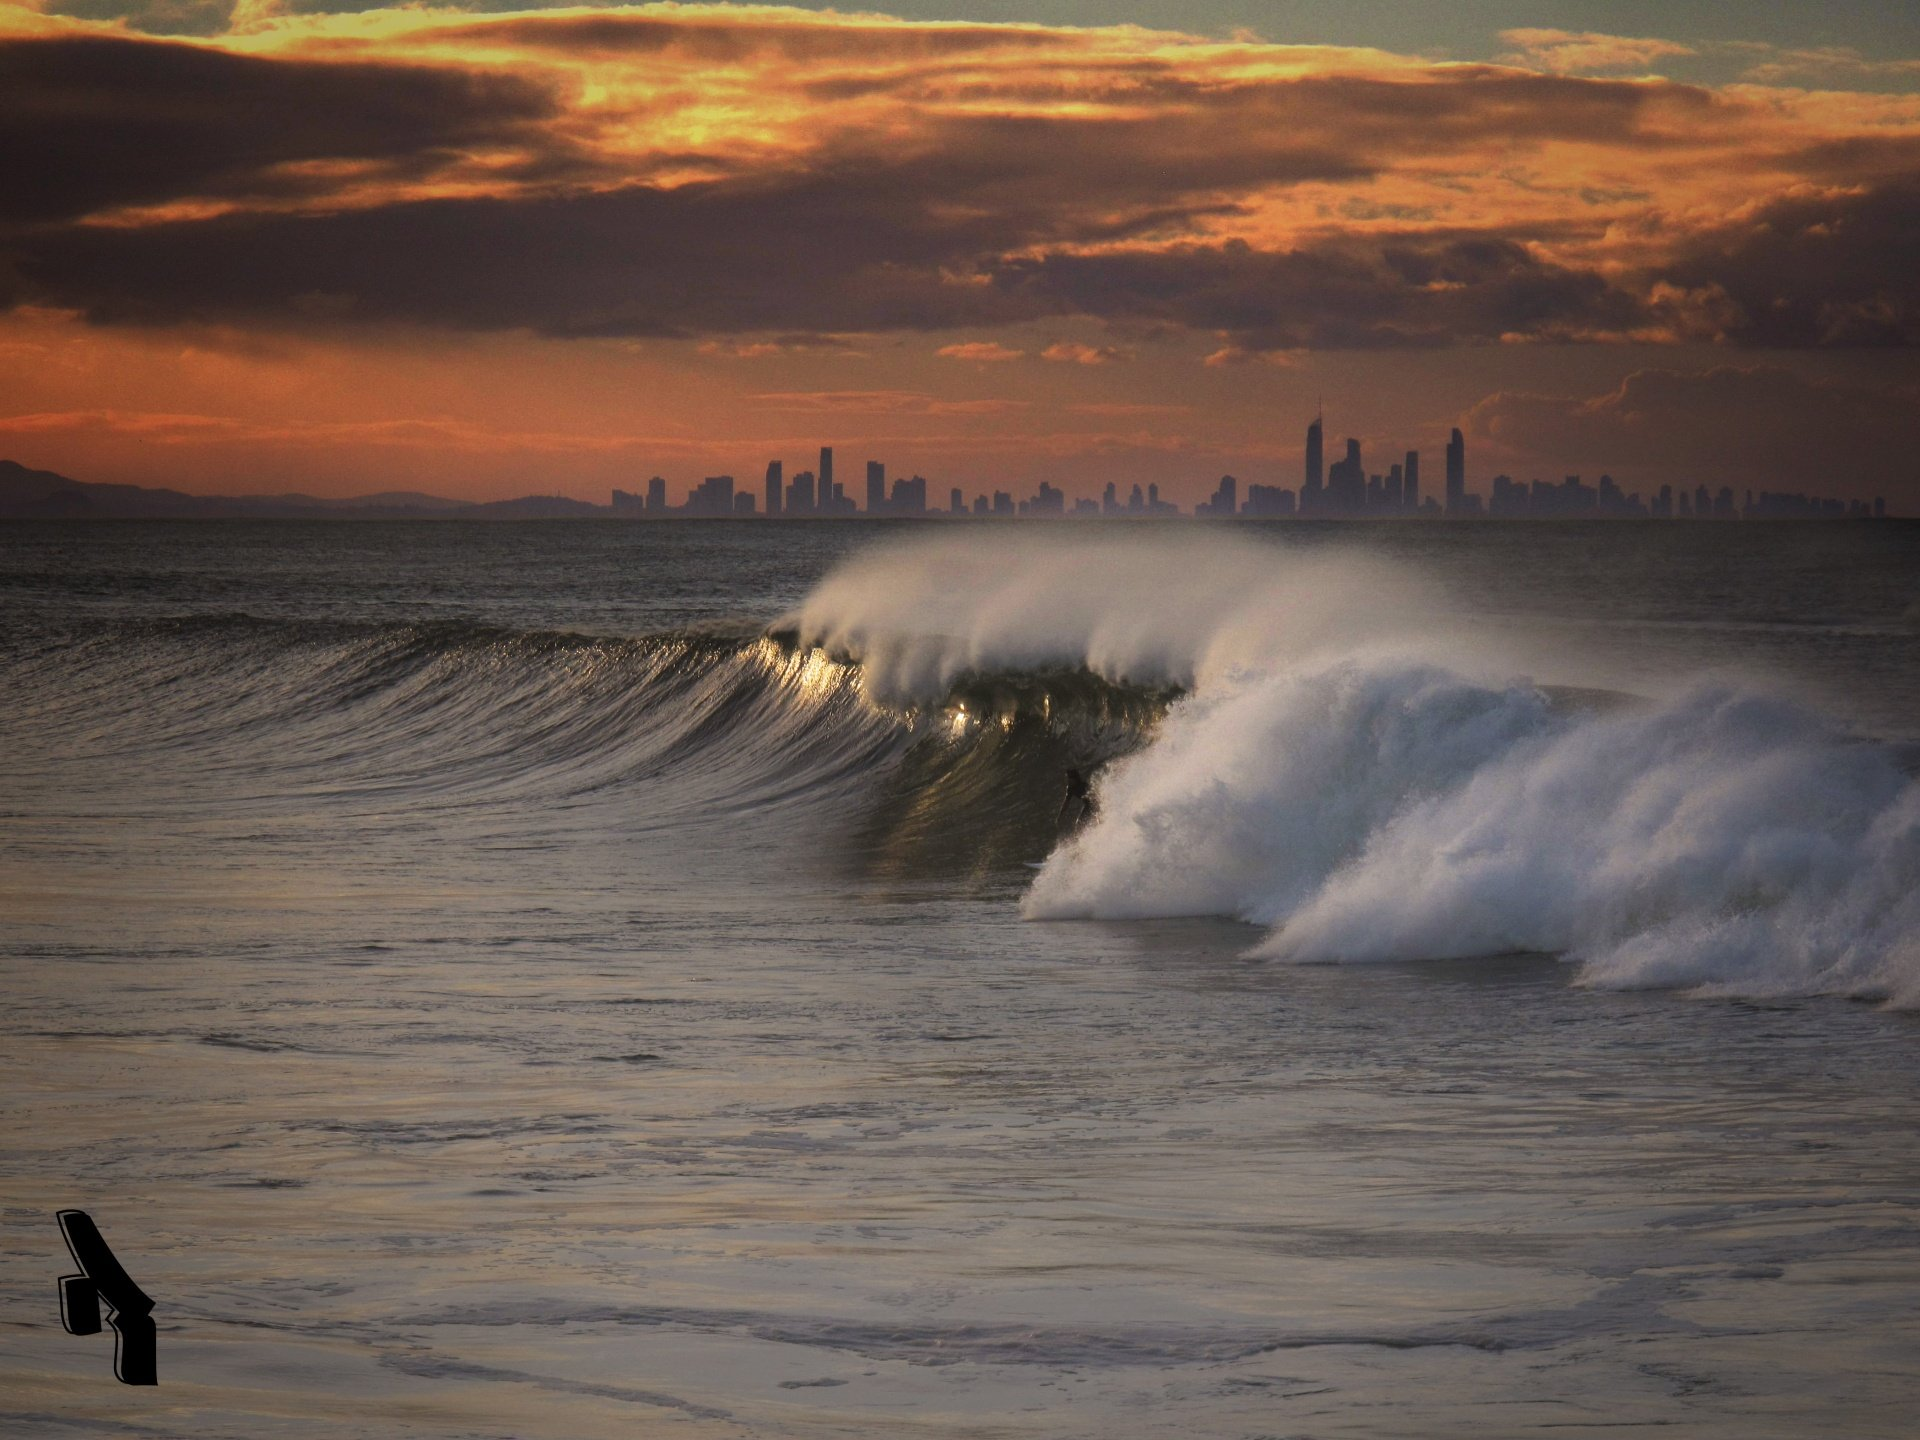 Rit Cooper's photo of Kirra